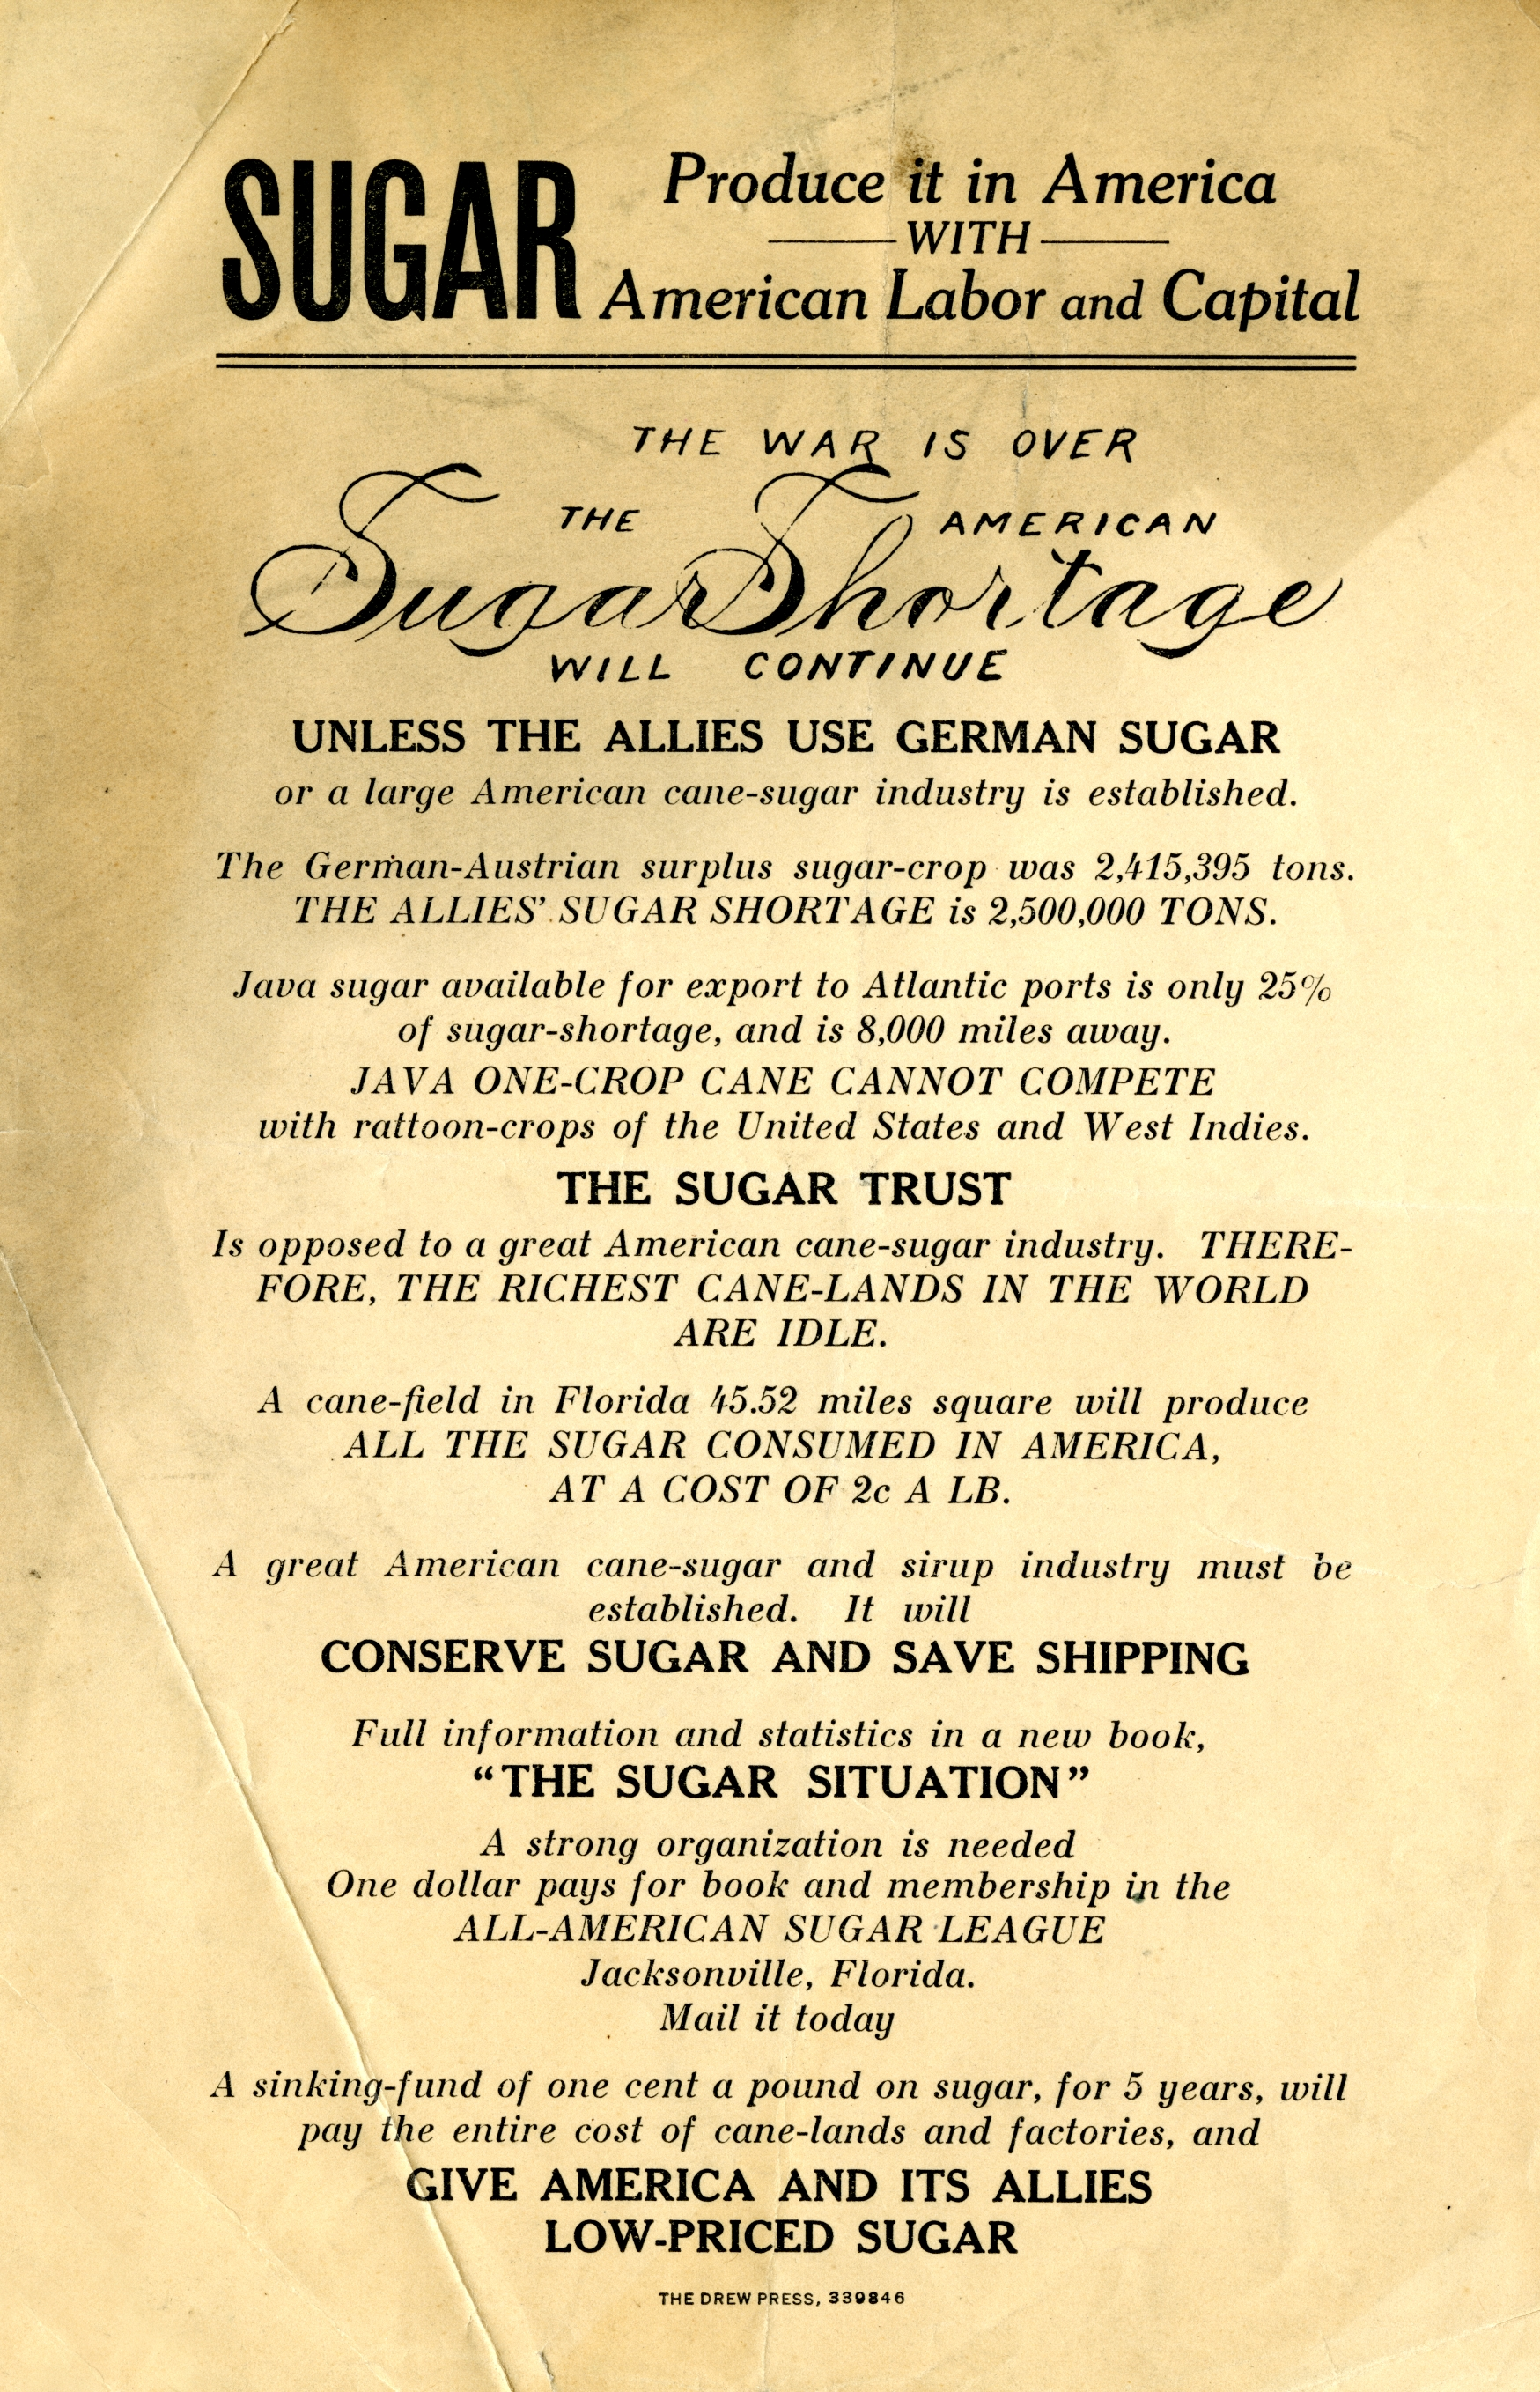 Sugar, produce it in America with American labor and capital.